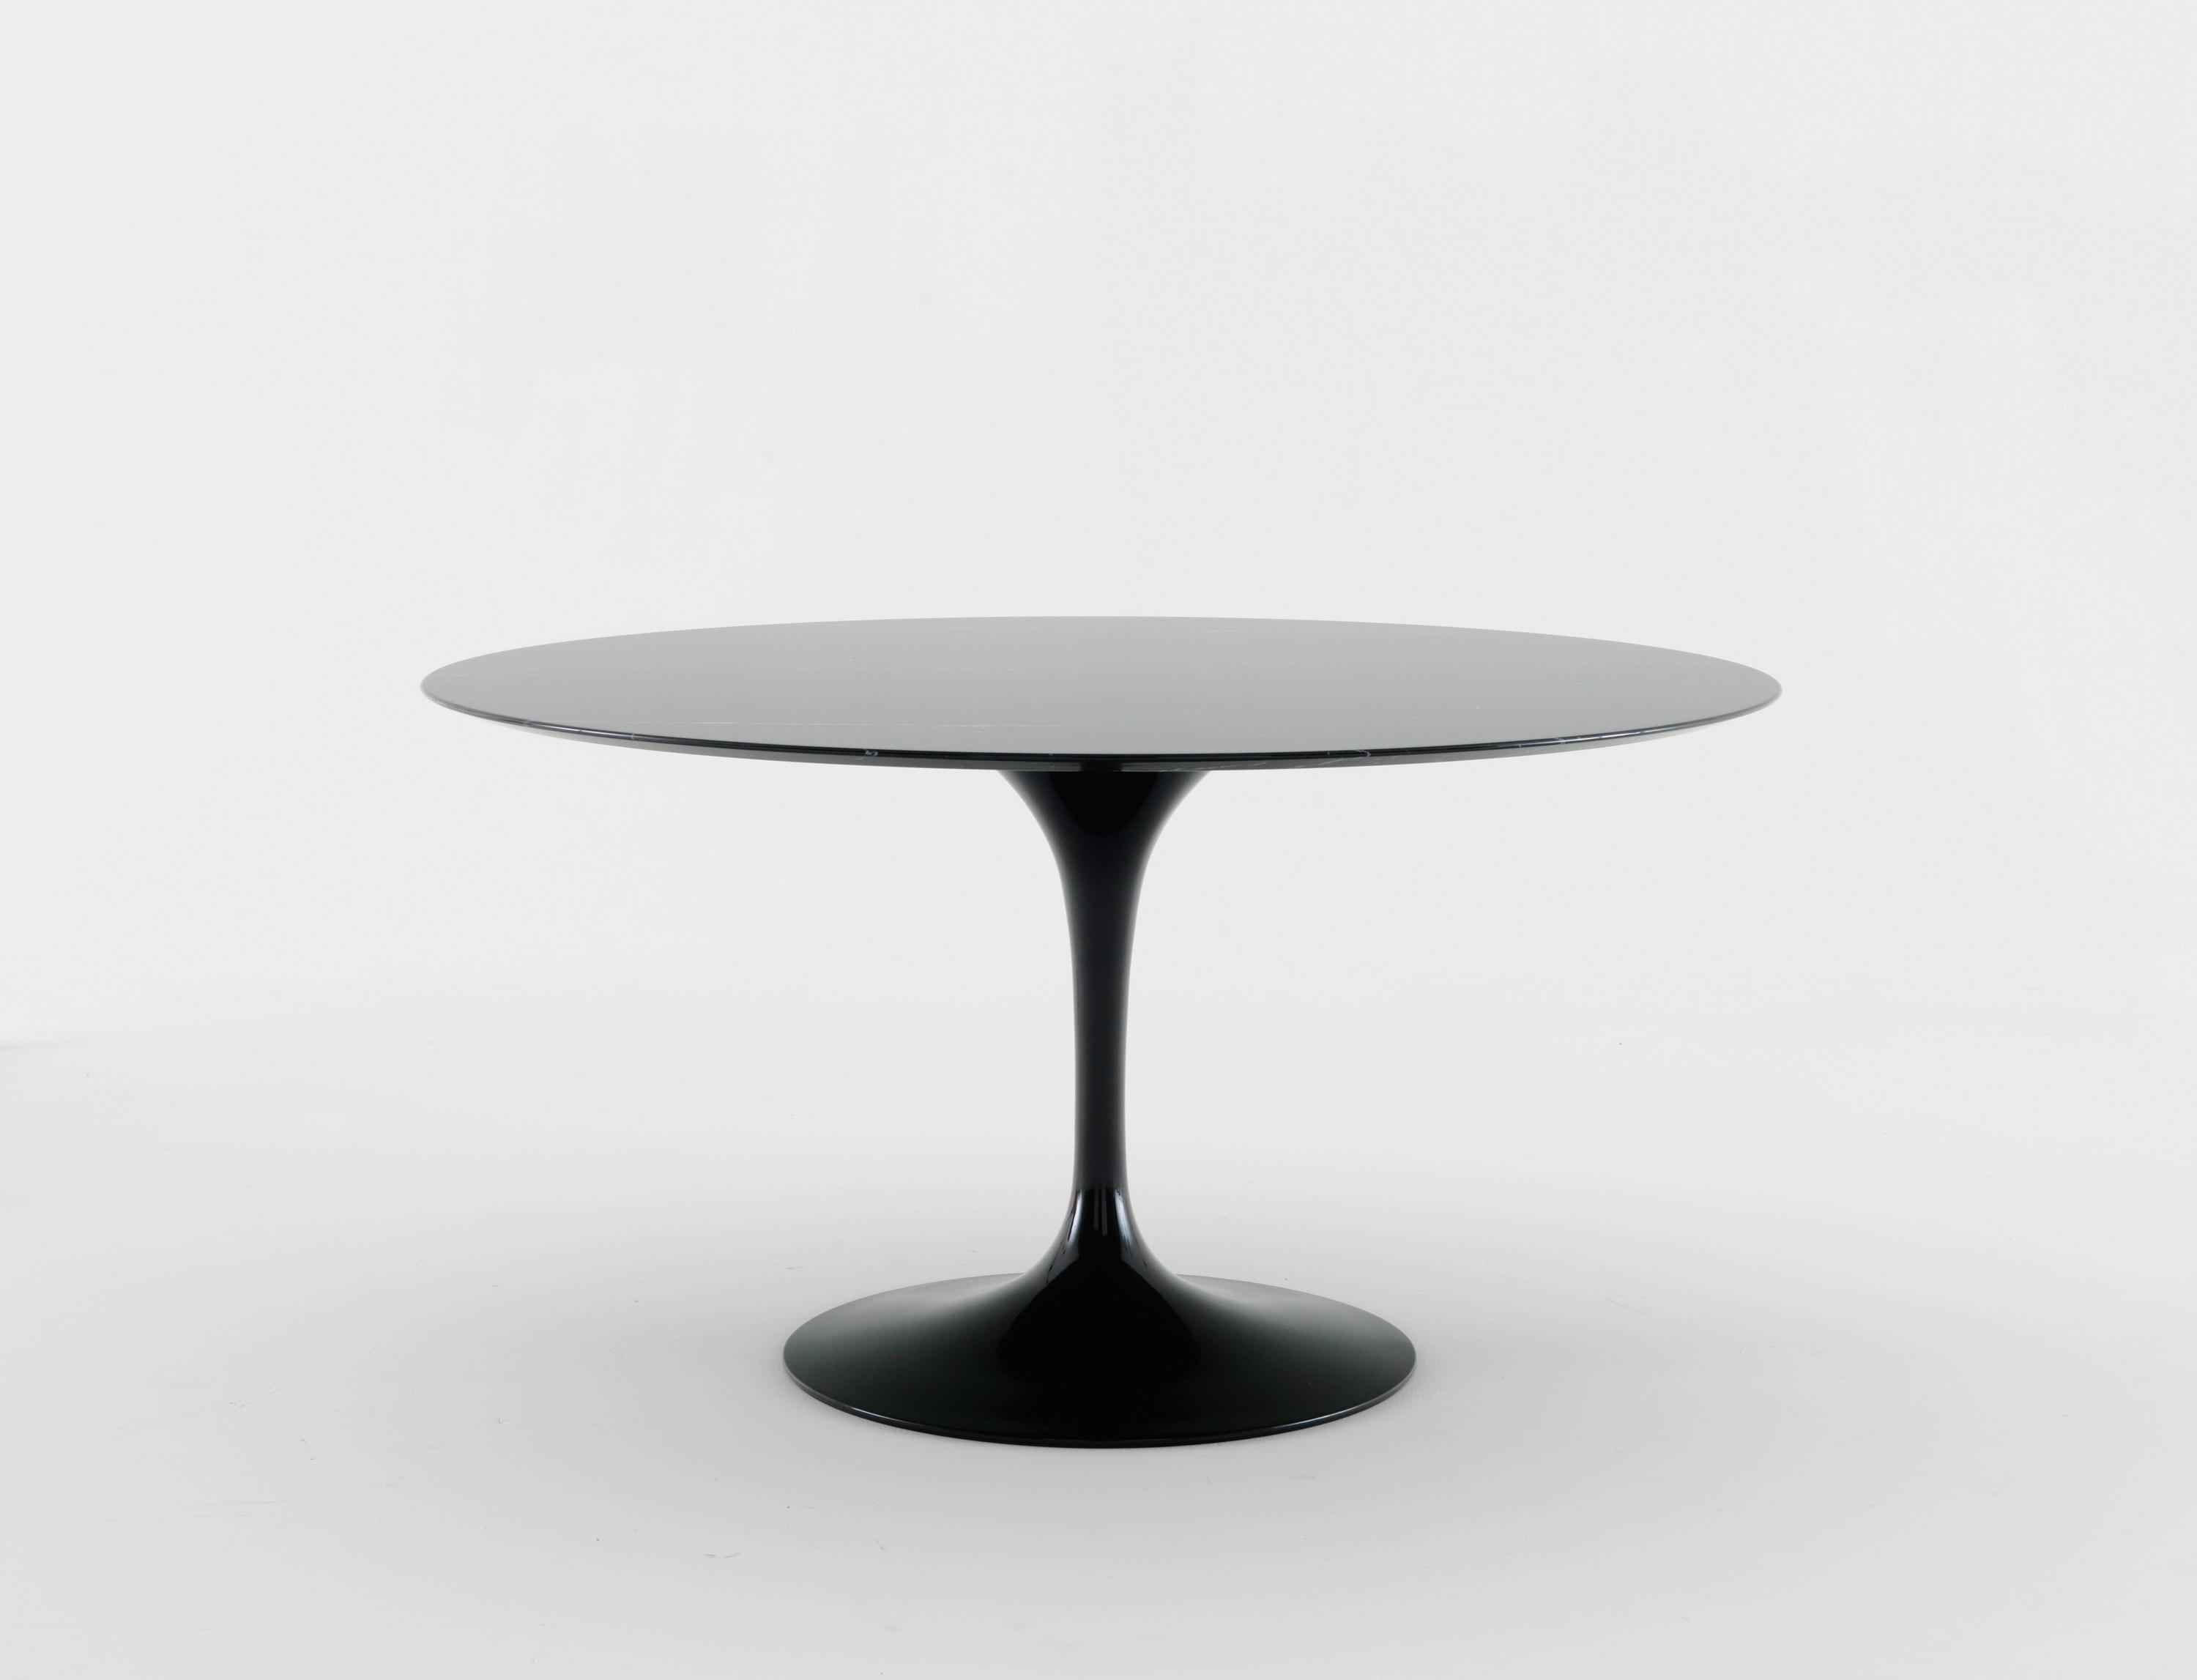 Knoll Saarinen Saarinen Tulip Dining Table Dining Tables By Knoll